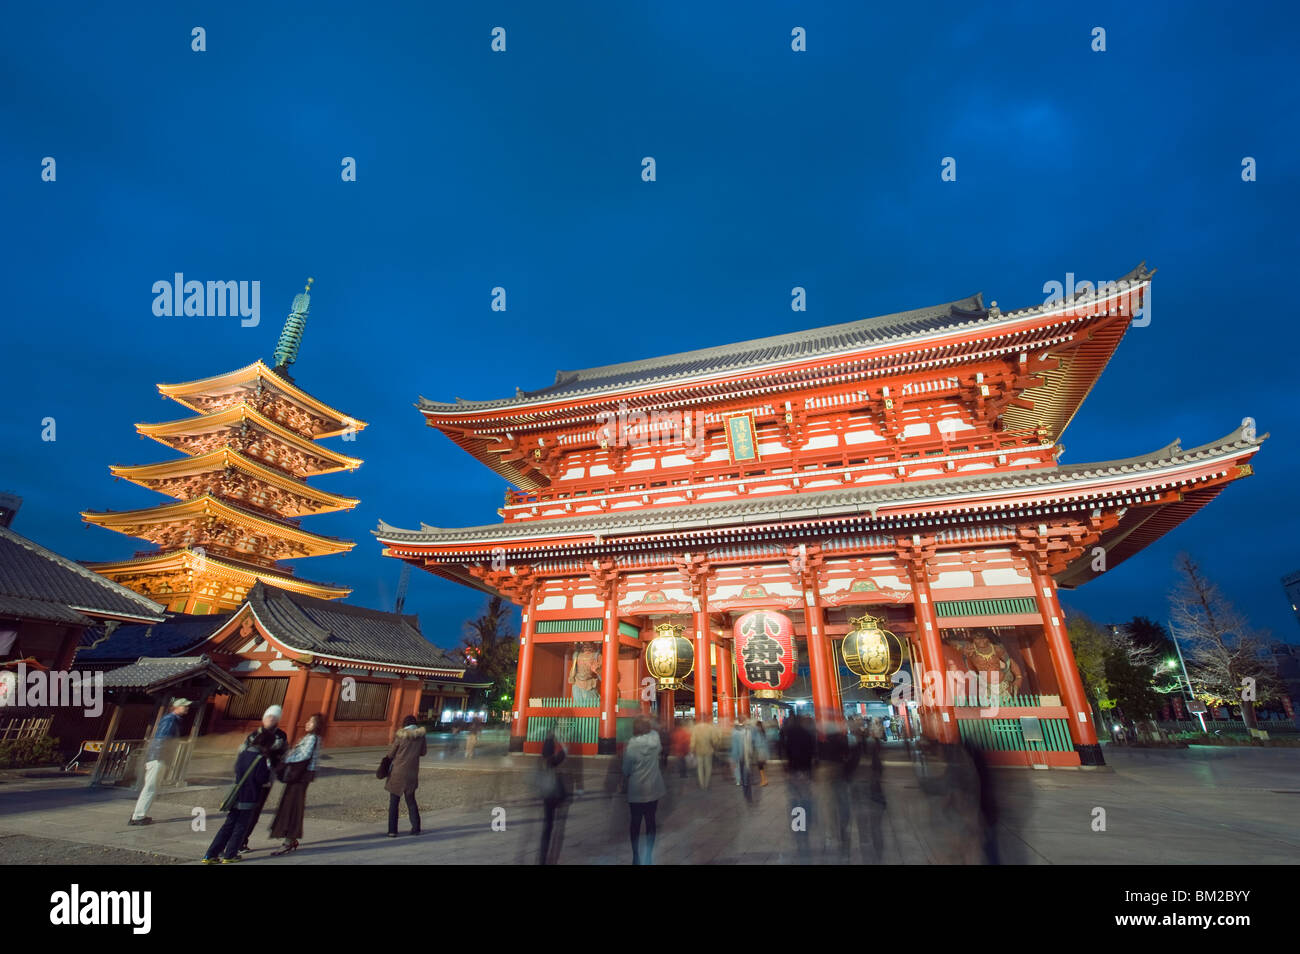 Sensoji temple illuminated at night, Asakusa, Tokyo, Japan - Stock Image